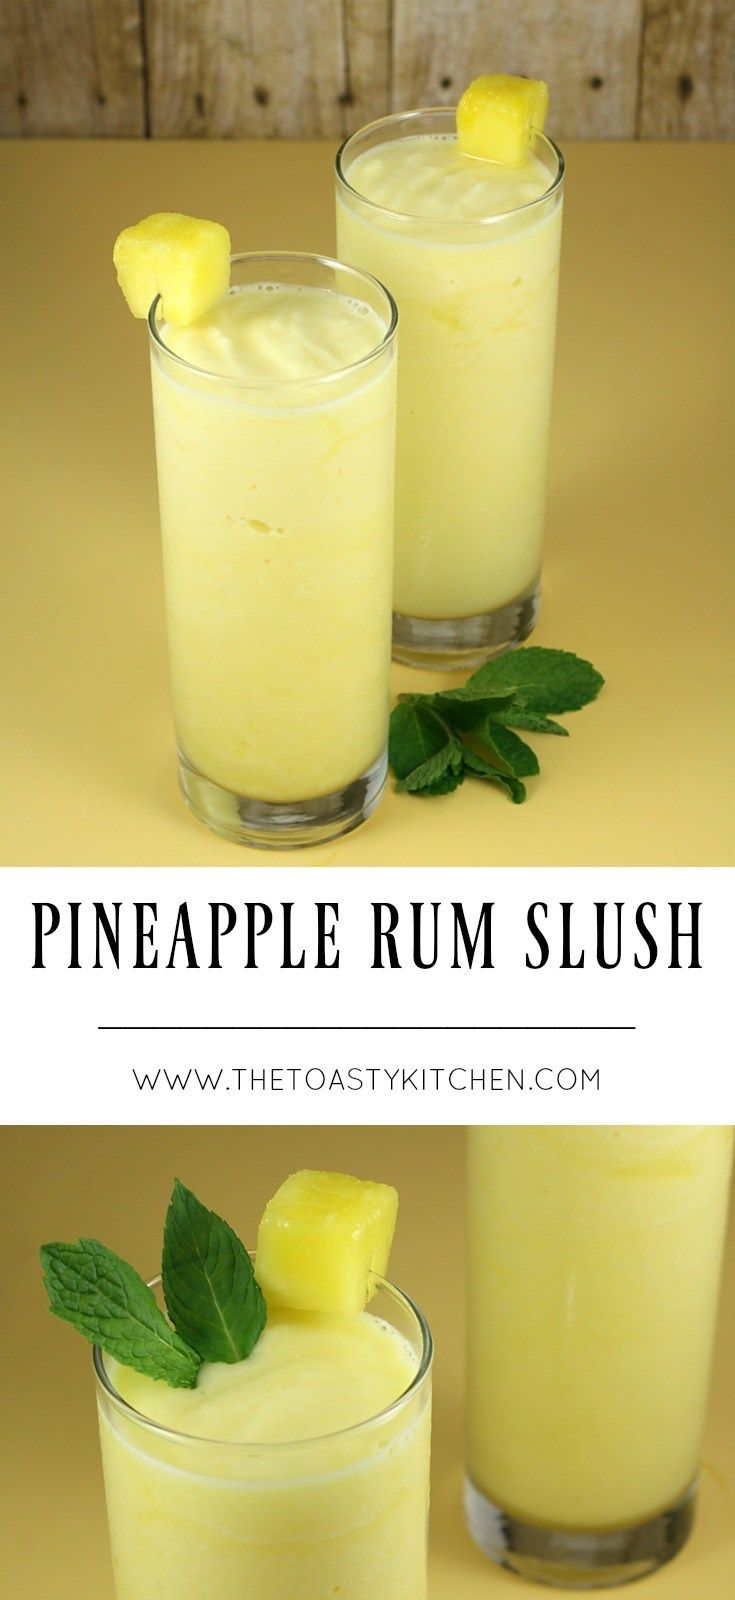 Pineapple Rum Slush by The Toasty Kitchen